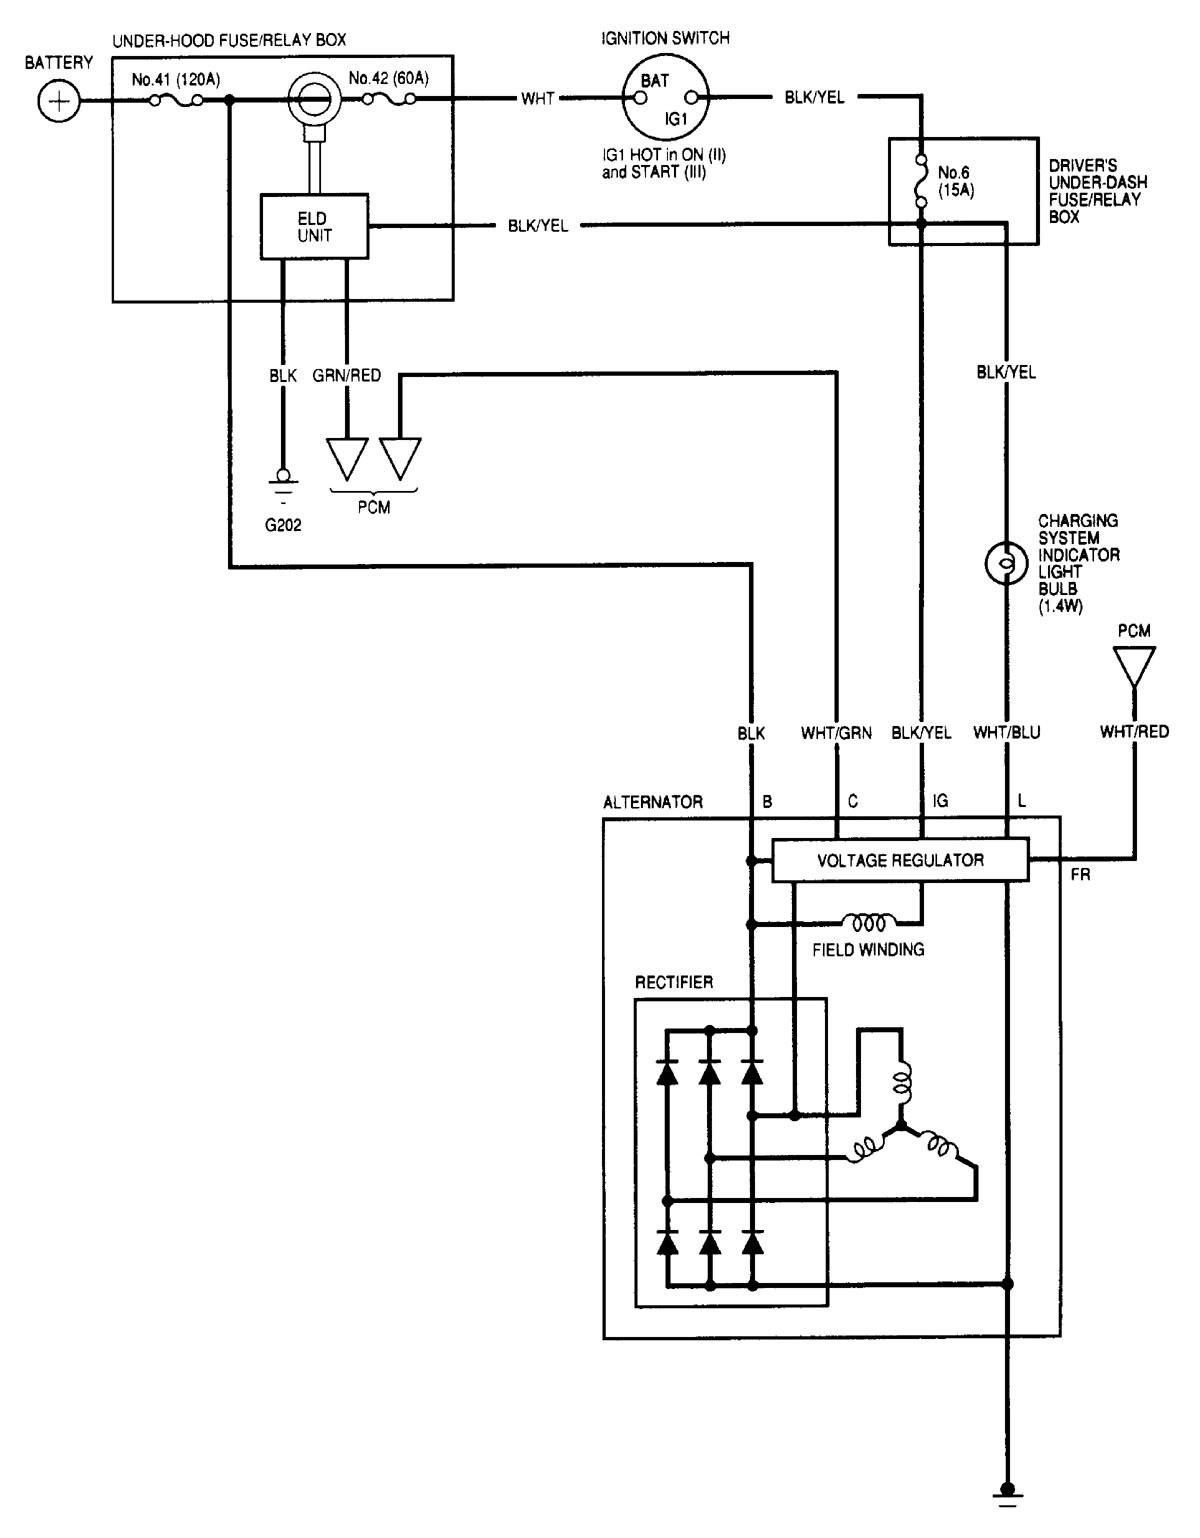 Acura Tl  2000 - 2001  - Wiring Diagrams